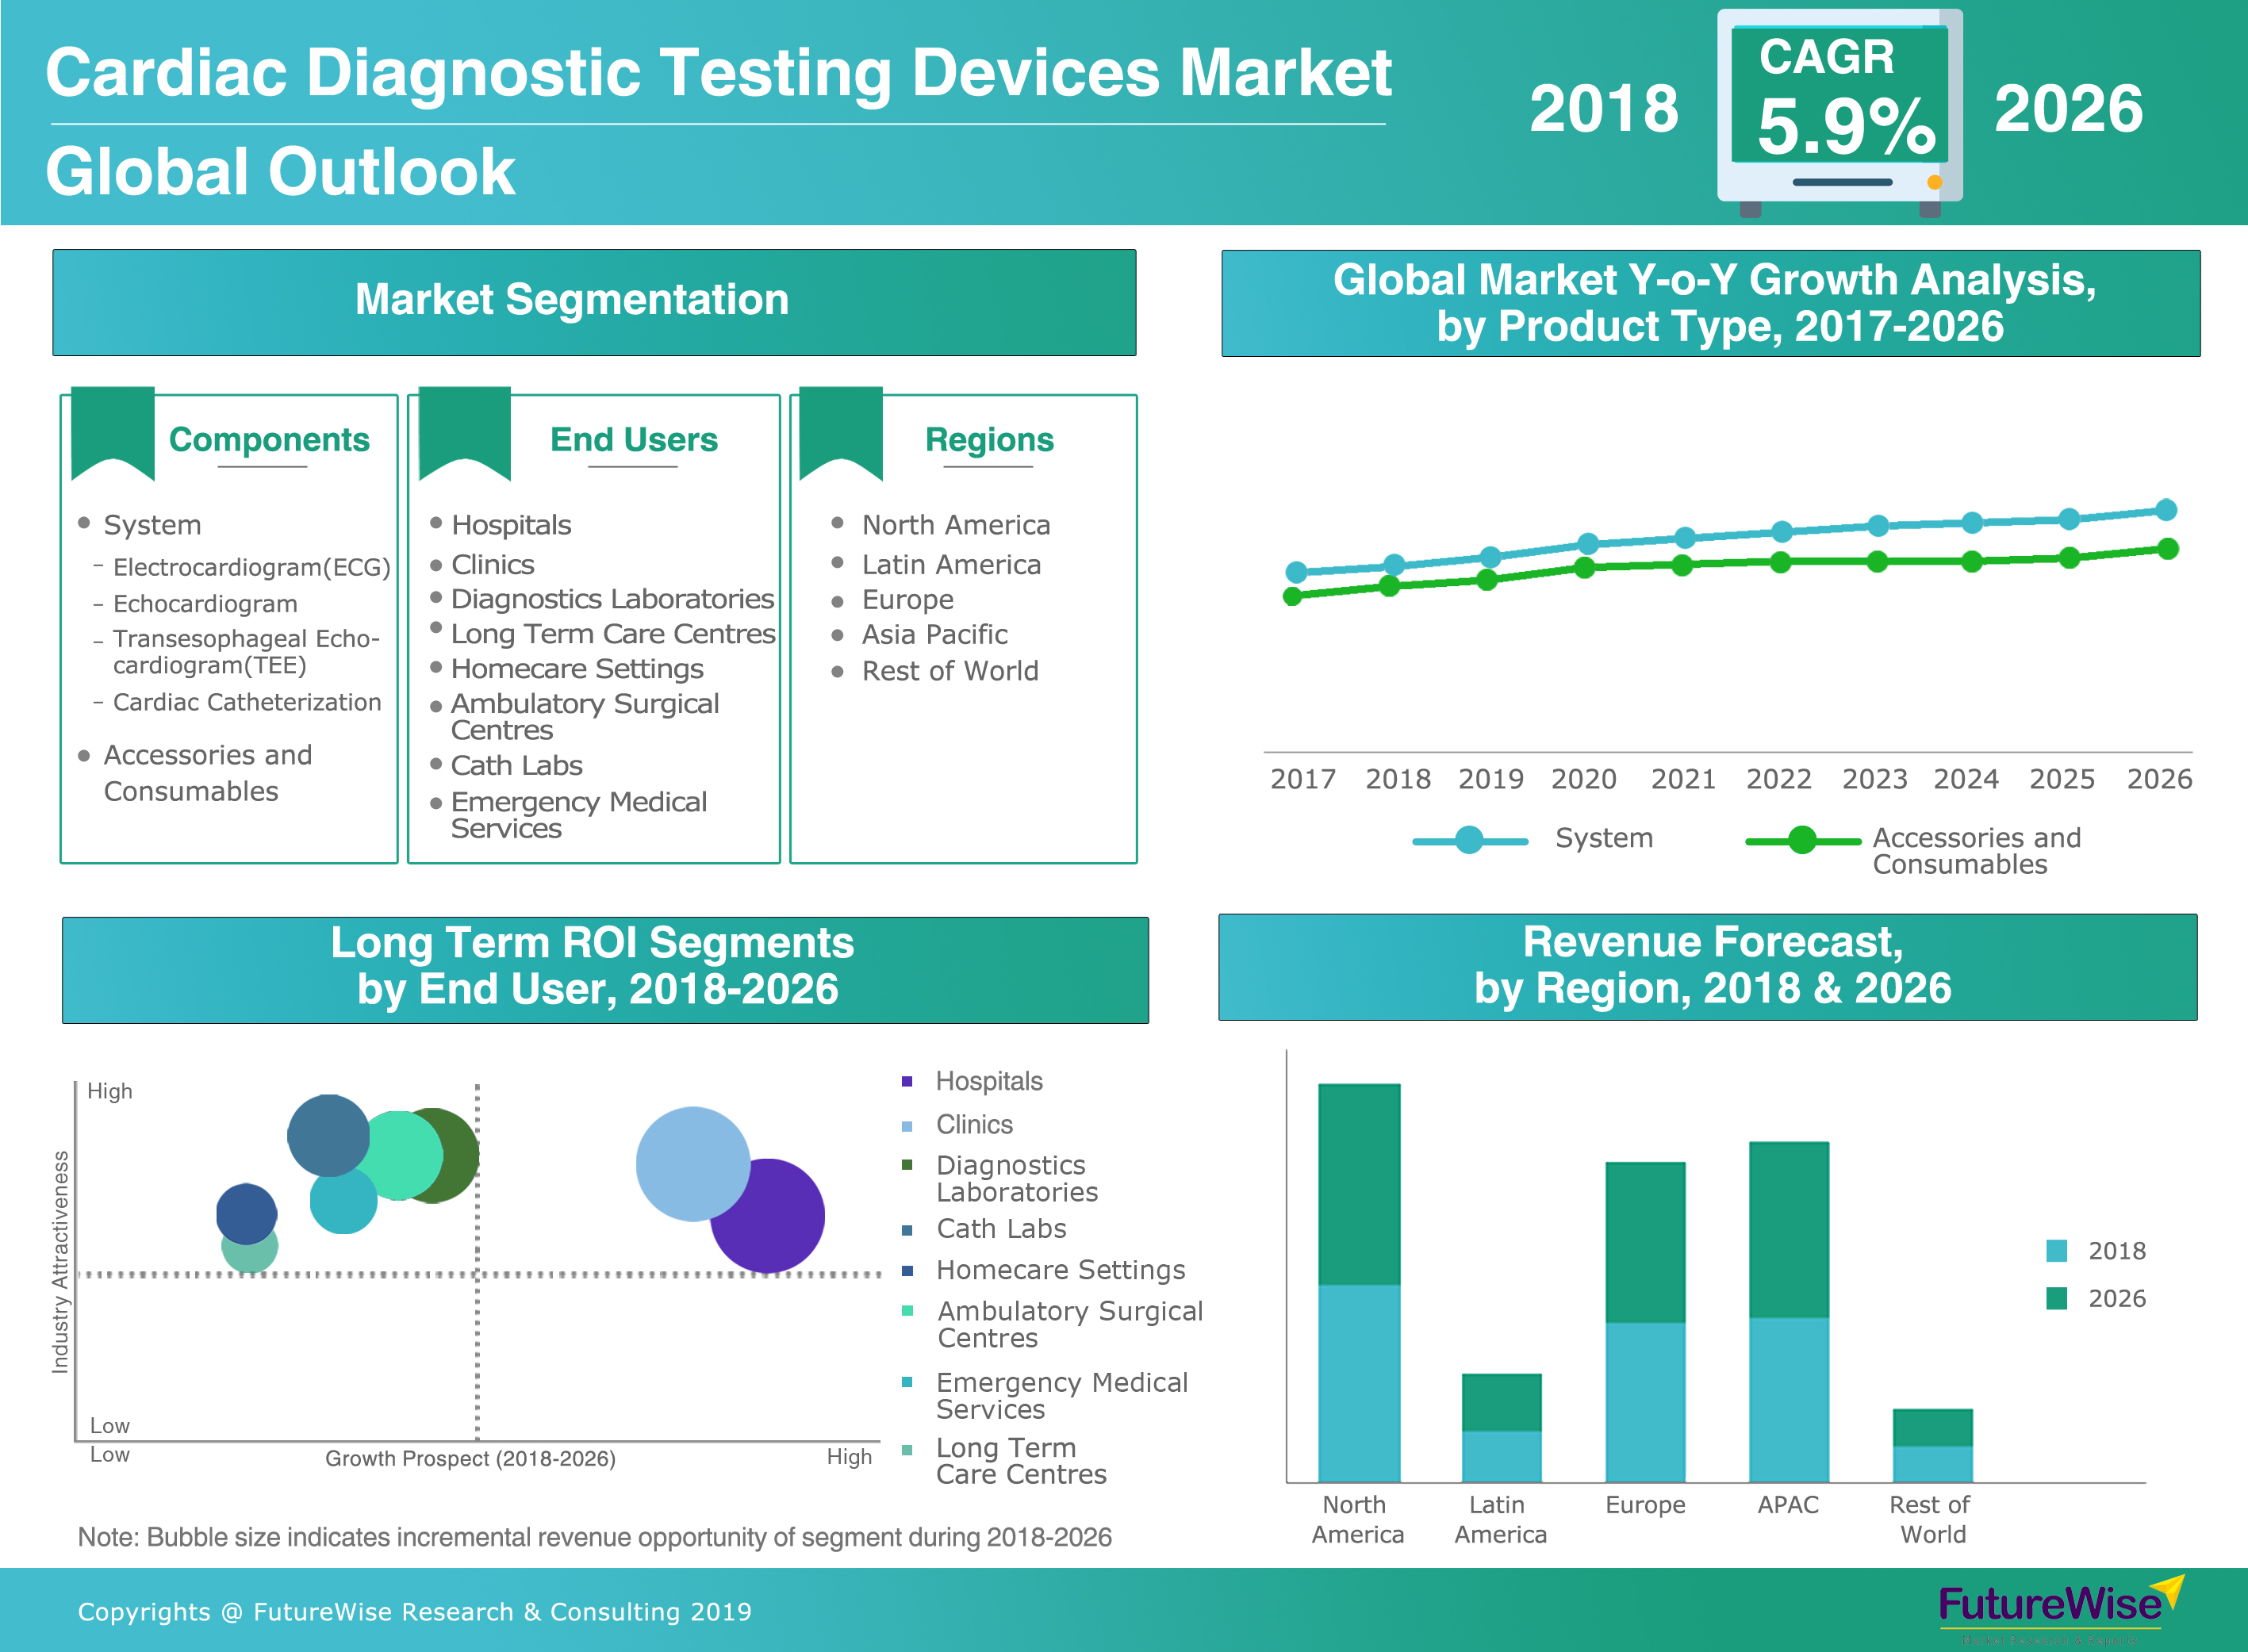 Cardiac Diagnostic Testing Devices Market